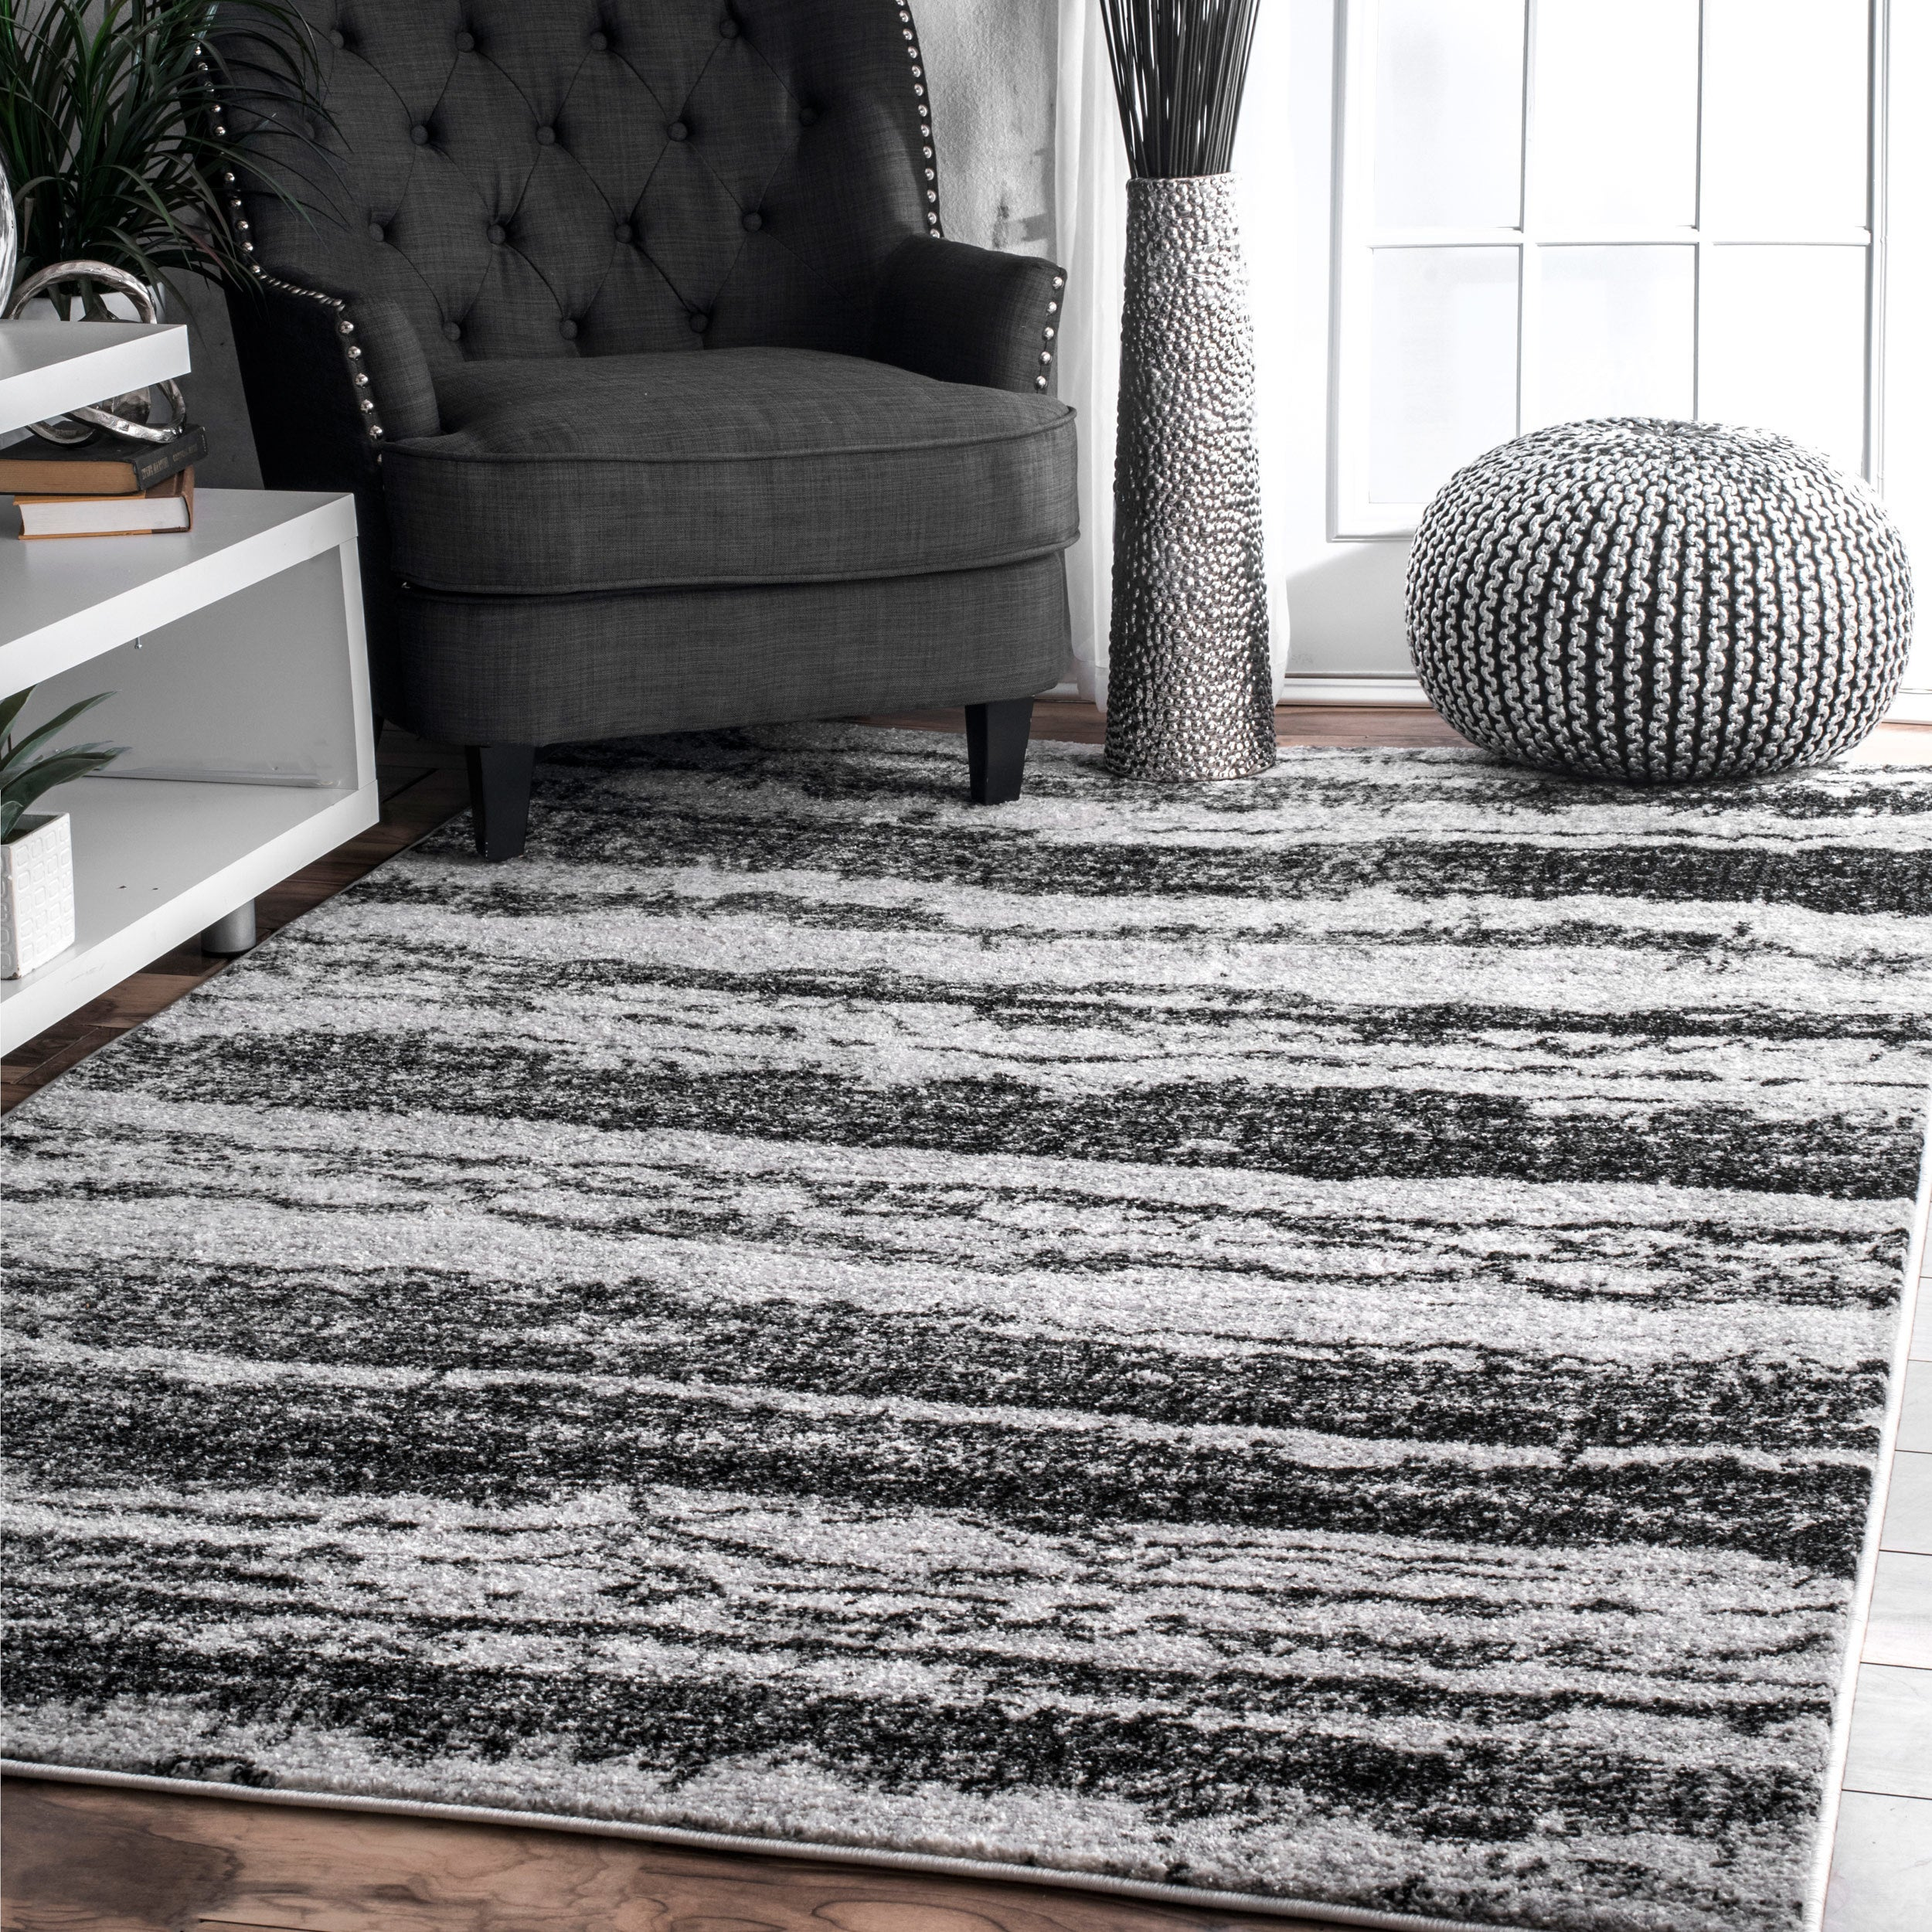 design and gallery by projects rugs floored diy in white striped rug black view